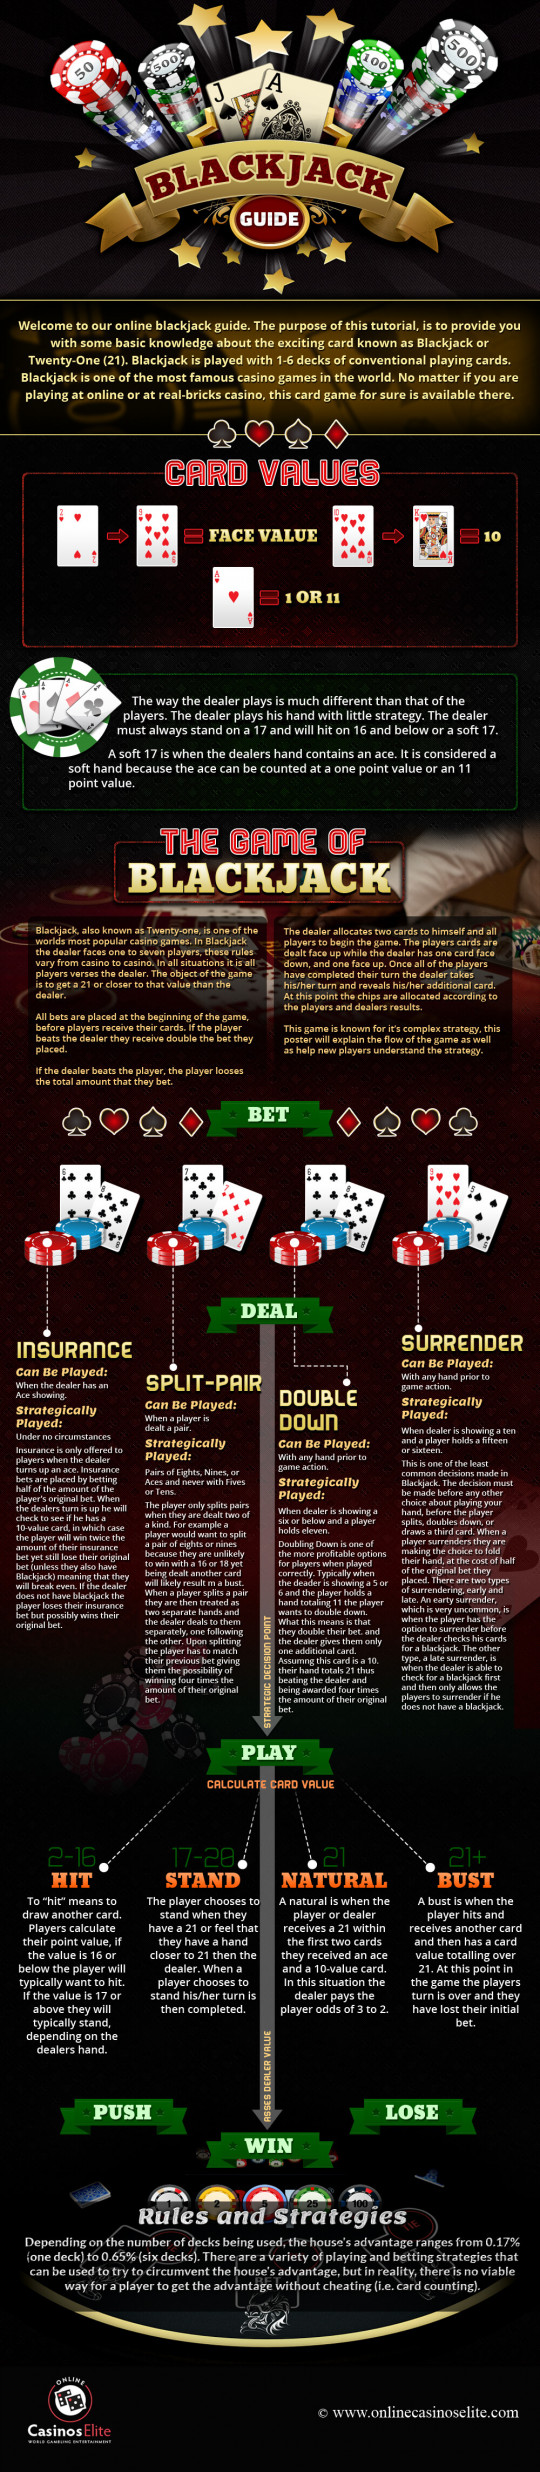 Online Blackjack Guide - Infographic